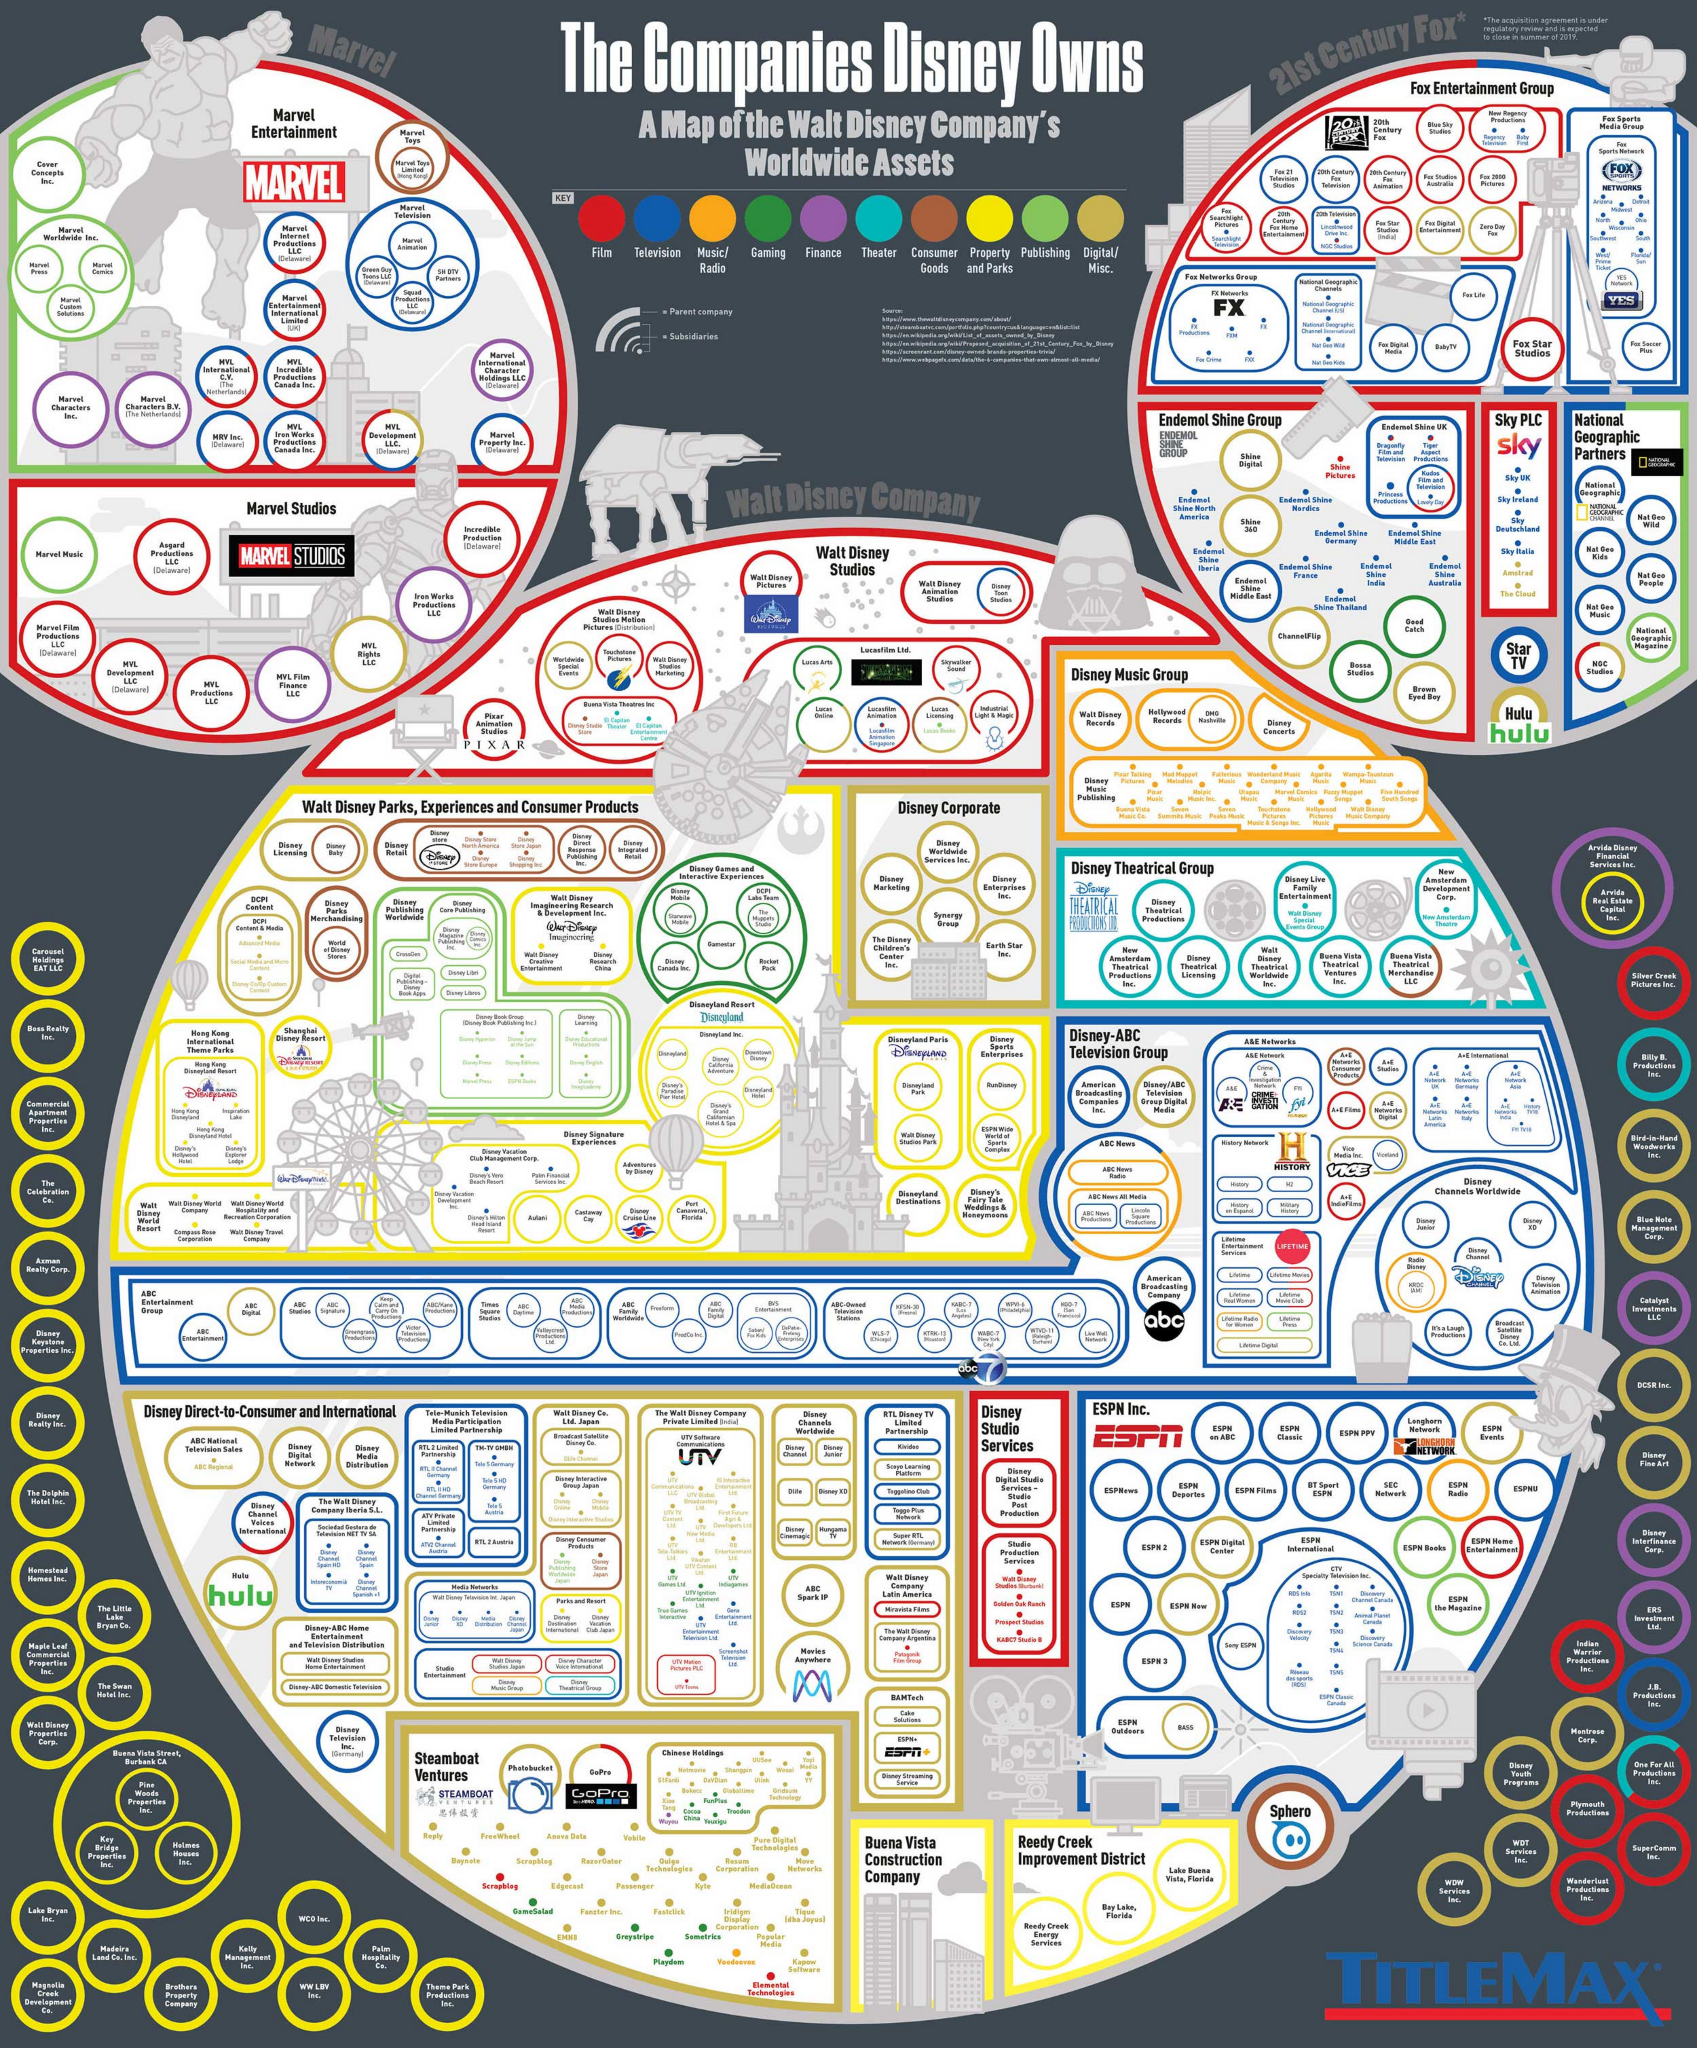 Companies Owned by Disney